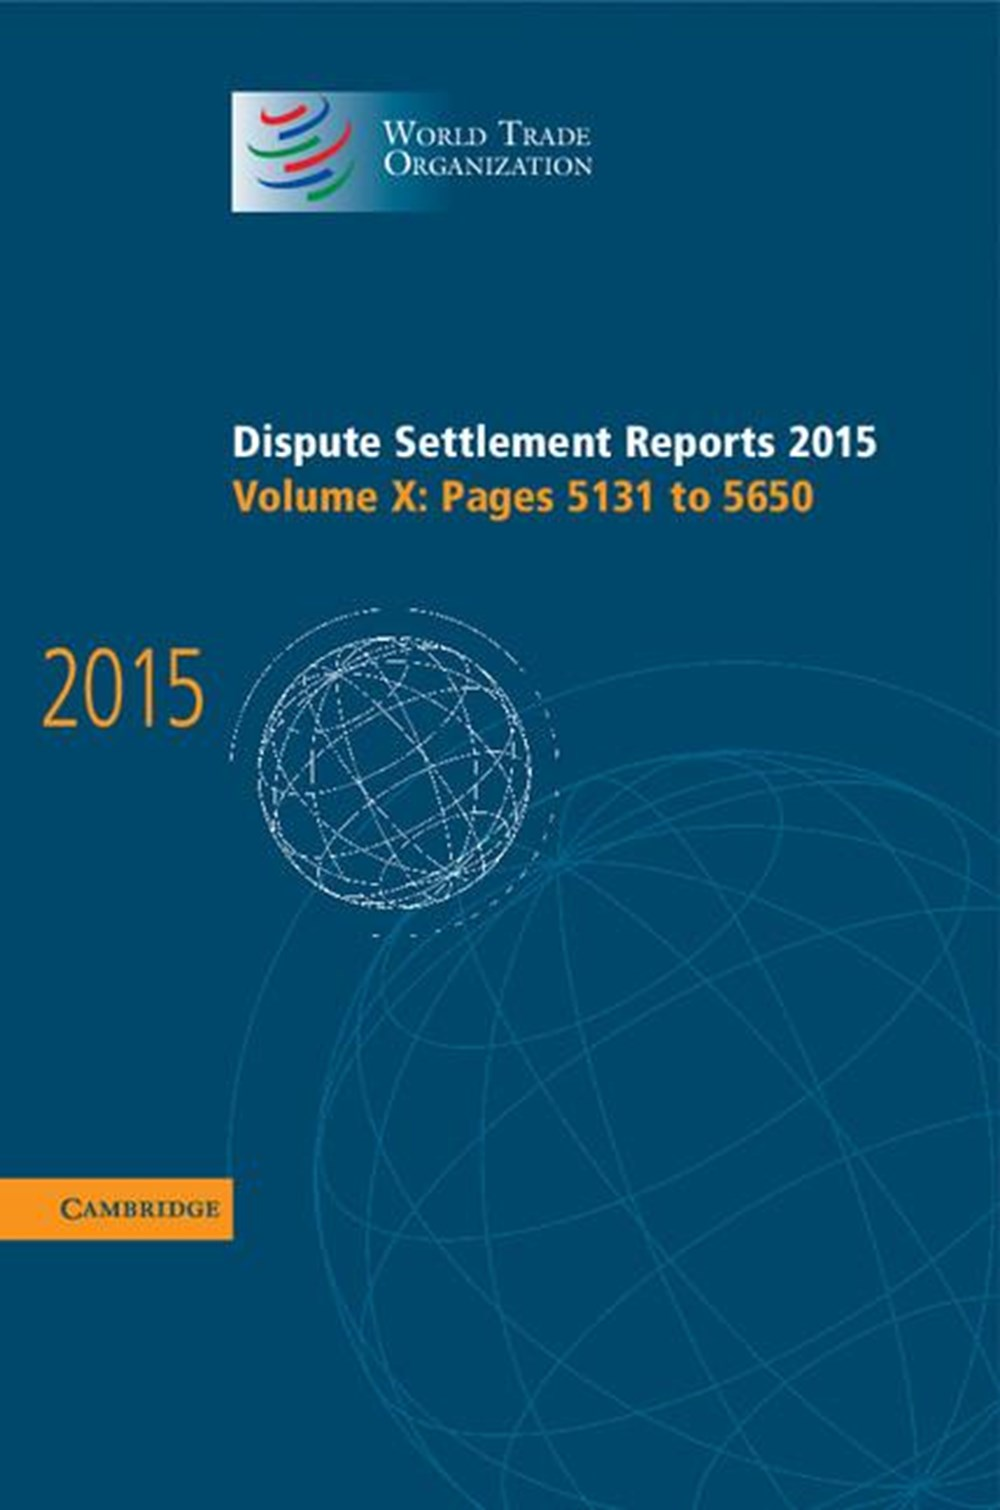 Dispute Settlement Reports 2015 Volume 10, Pages 5131-5650